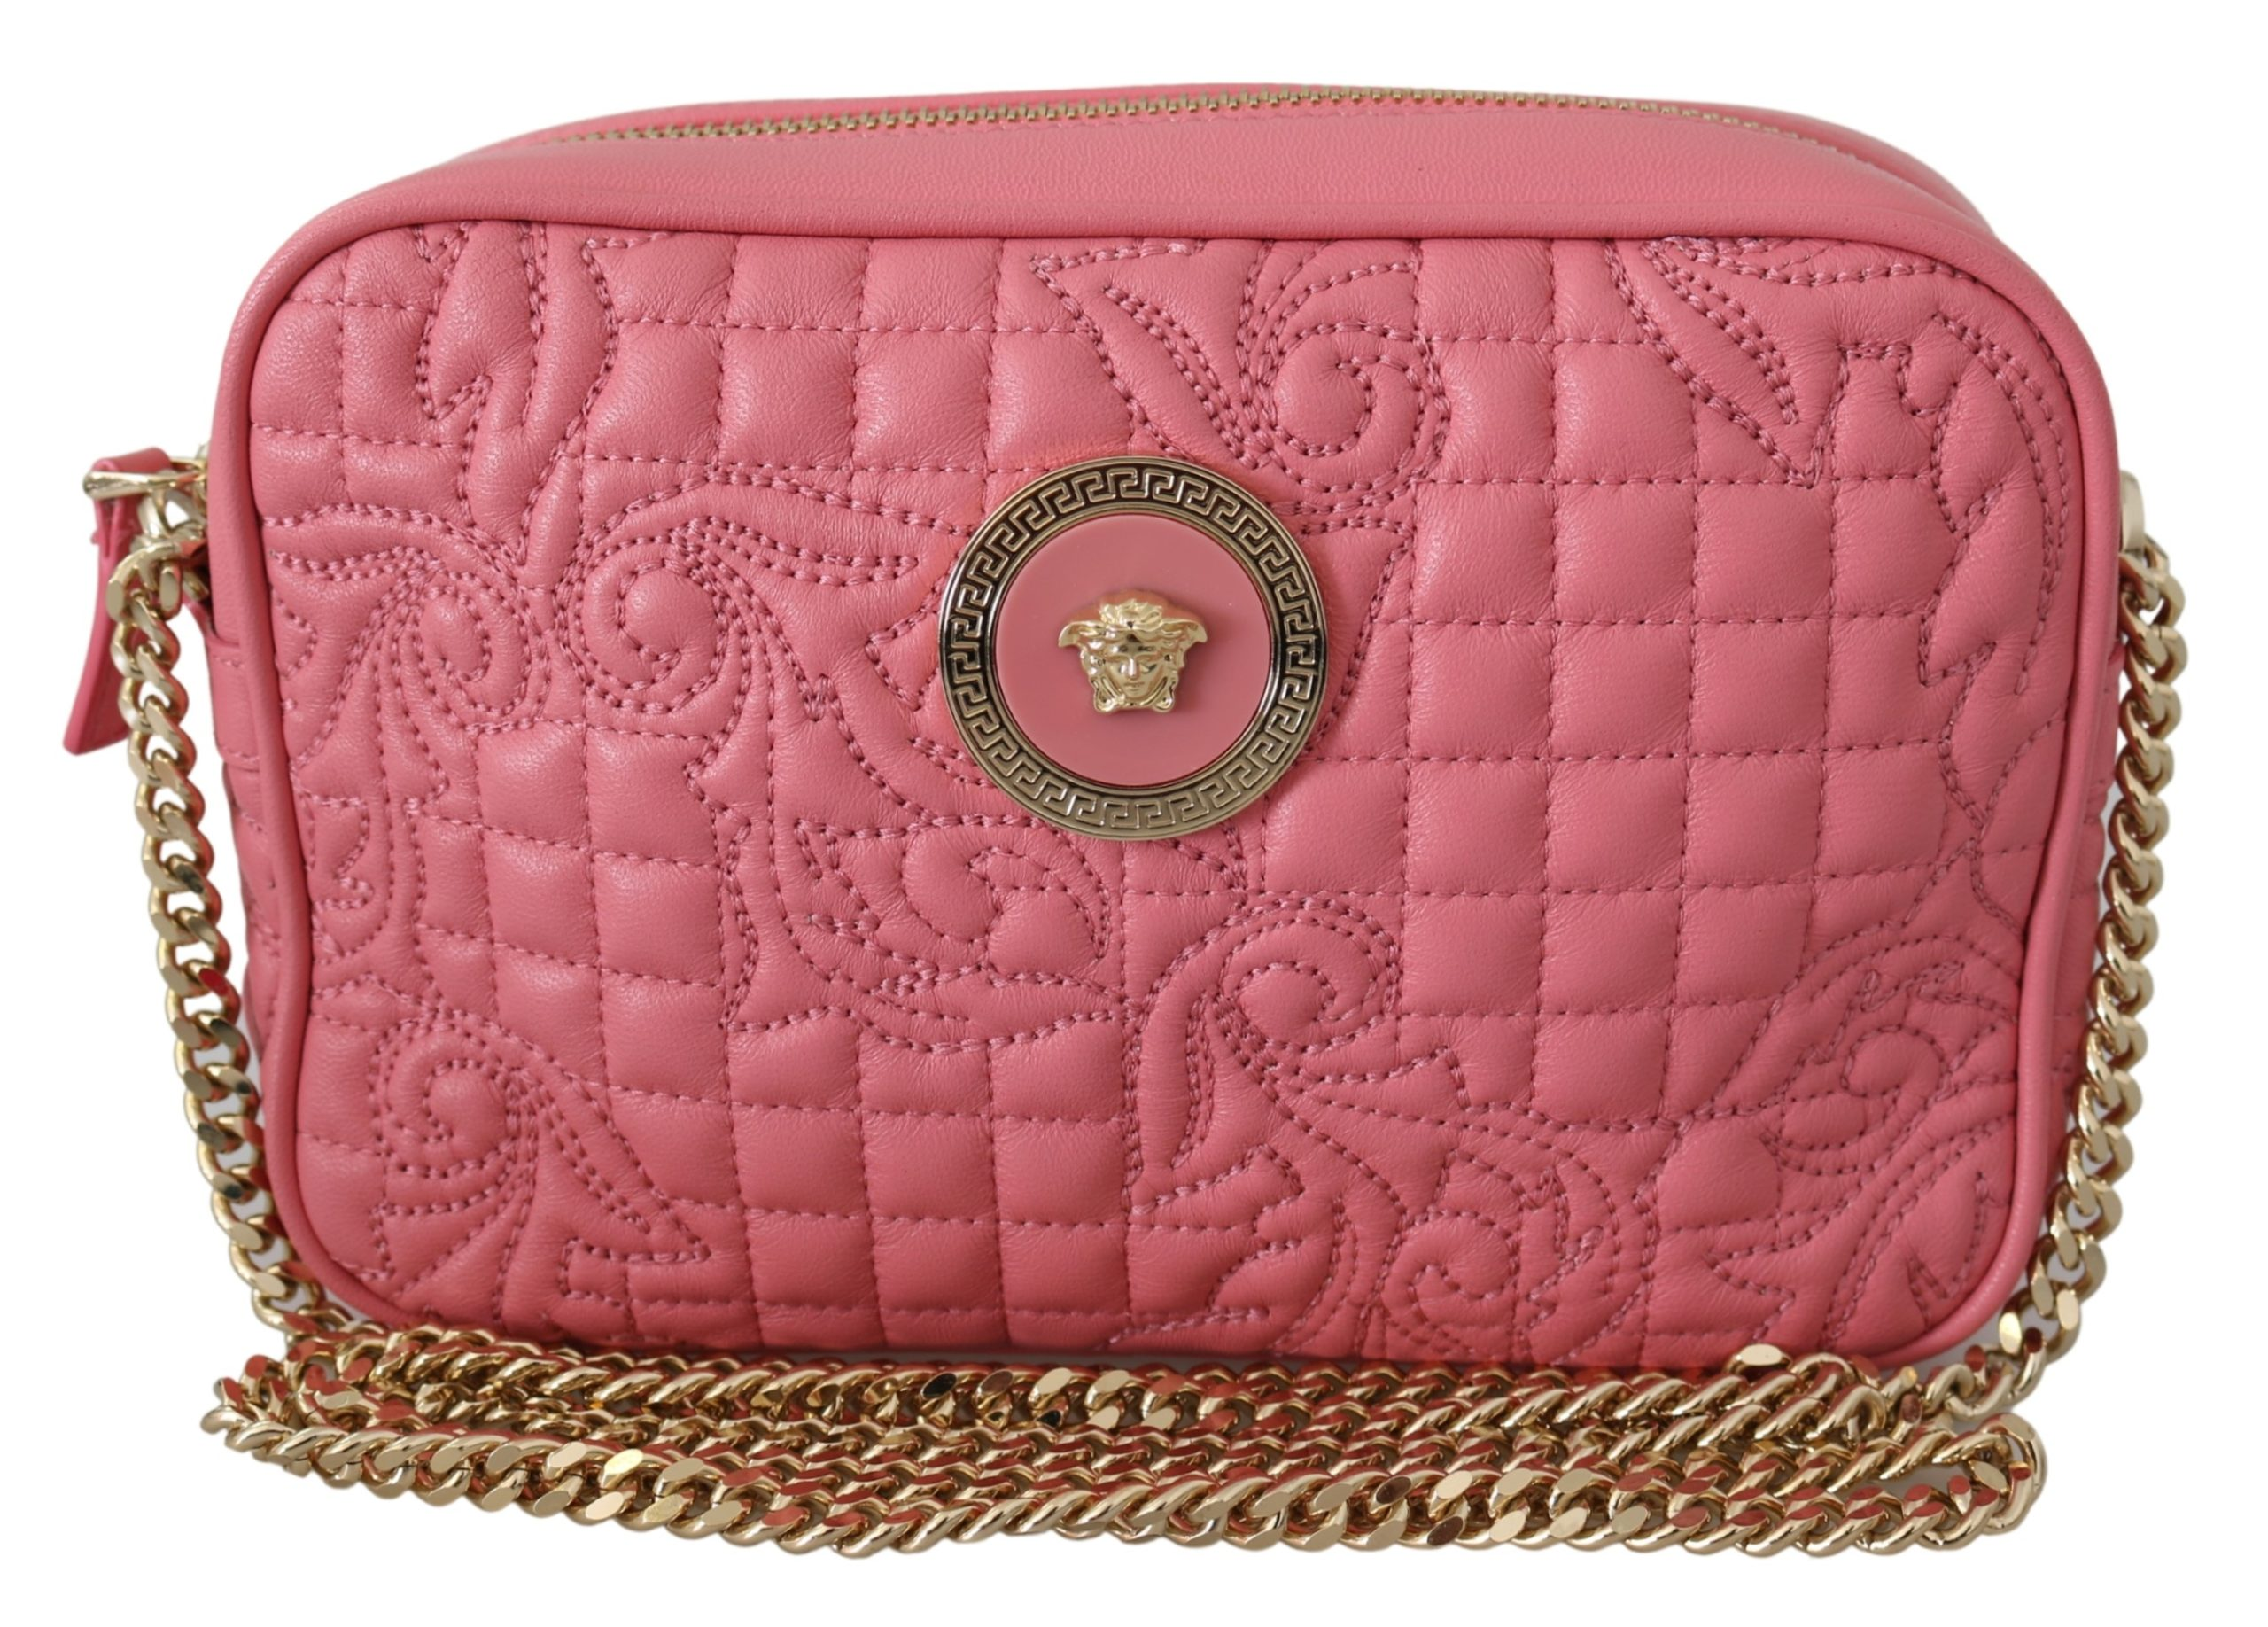 Versace Women's Quilted Nappa Leather Clutch Bag Pink 8053850413980